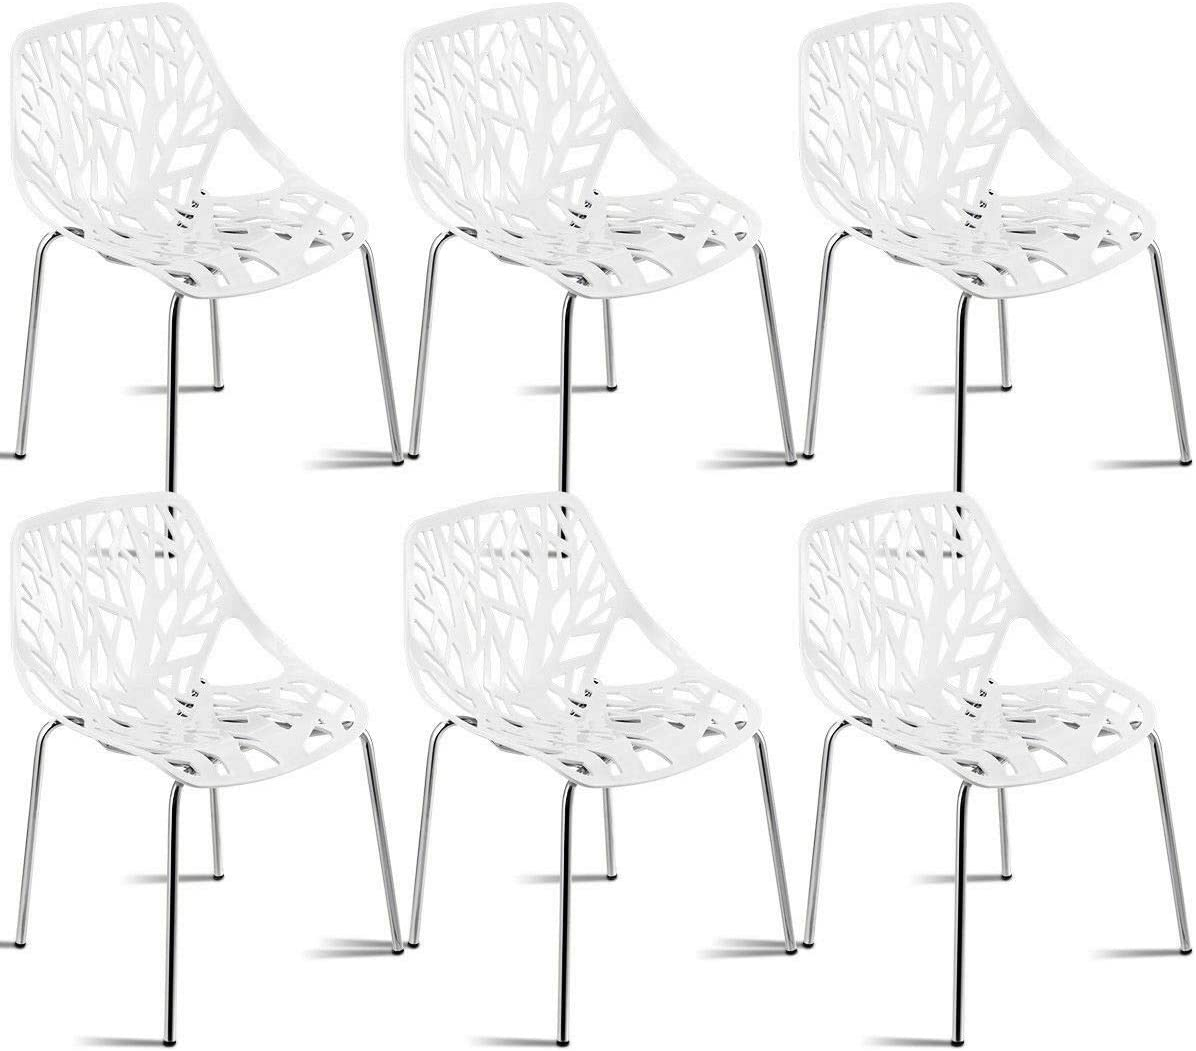 Giantex Set of 6 Modern Dining Chairs w Plastic Feet Pads Stackable Chair Geometric Style Furniture Dining Side Chairs 6 Packs, White